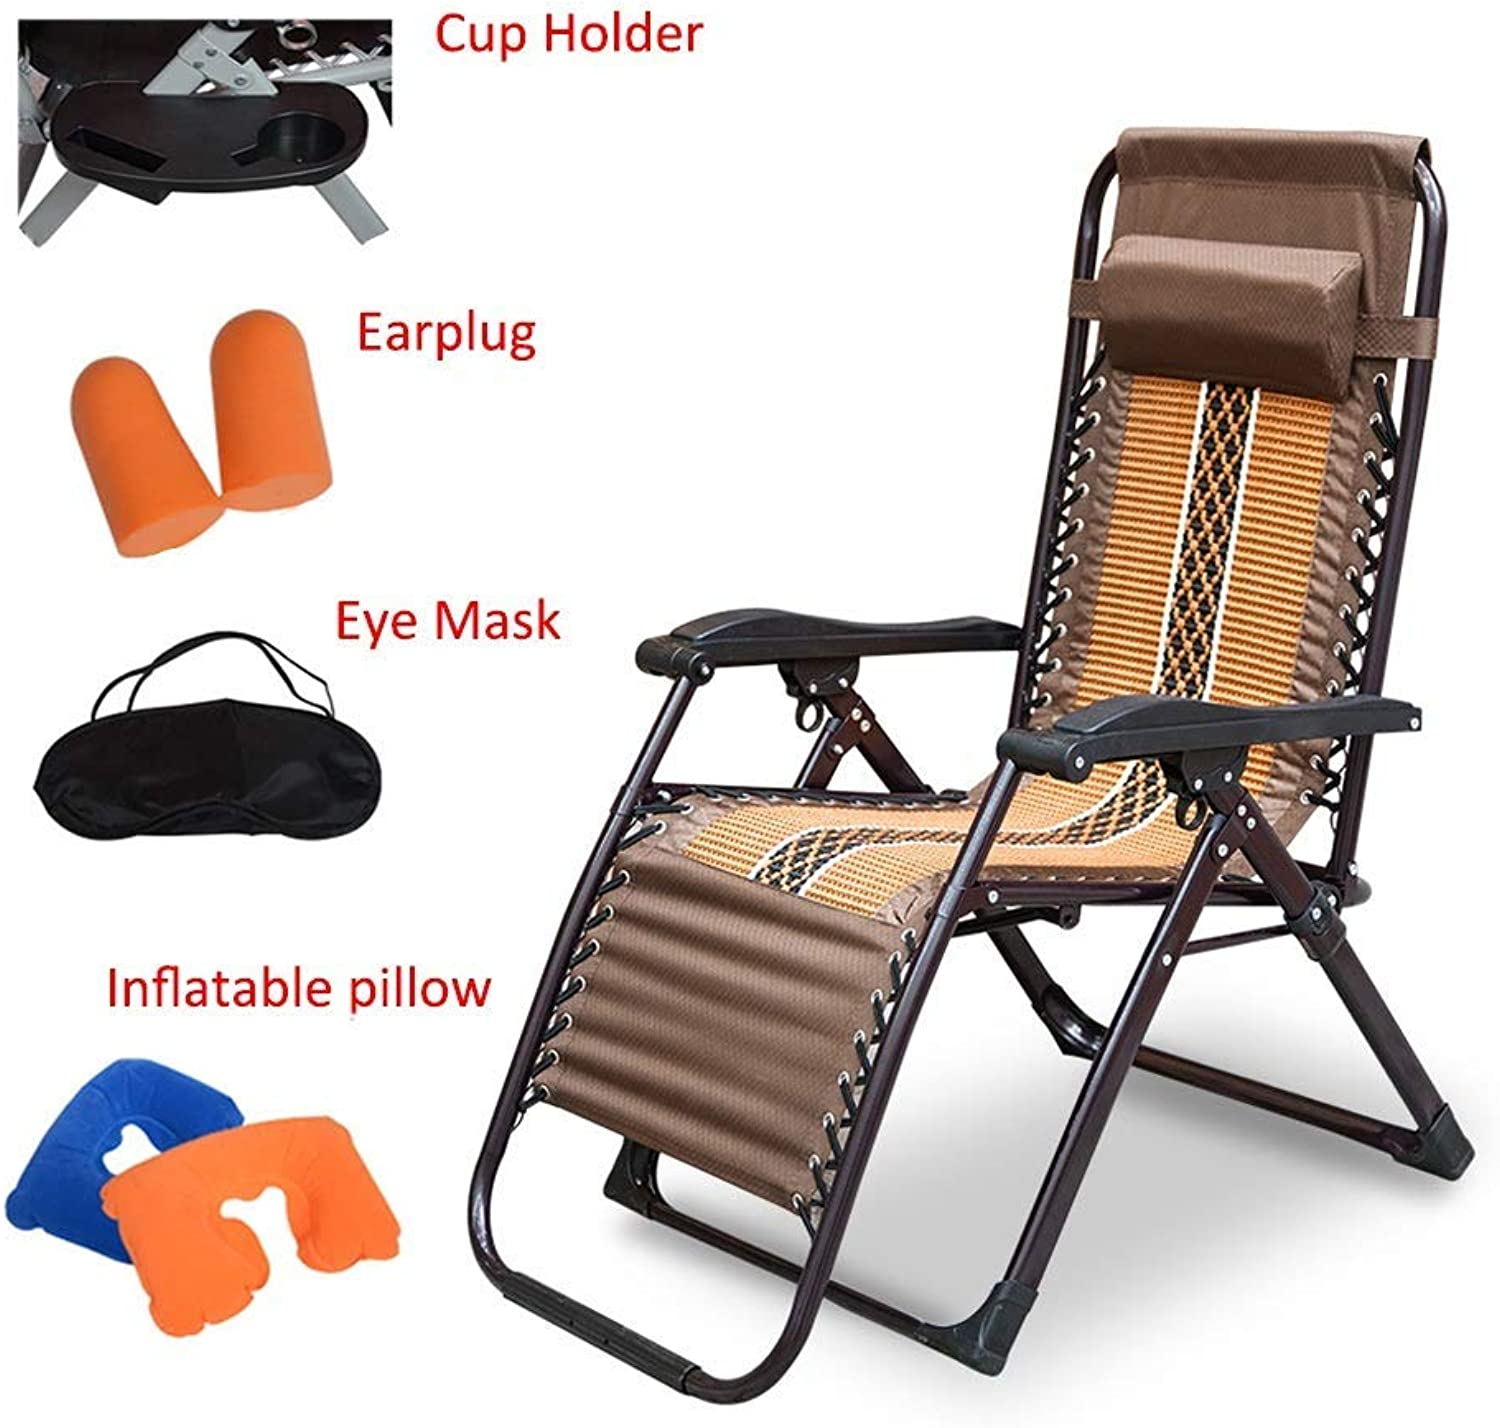 Rocking Lounger Folding Recliner Summer Lounge Chair Padded with Cool Mat and Cup Holder, Office Relaxer Nap Chair Sun Lounger Chair Ideal for Garden Patio Balcony